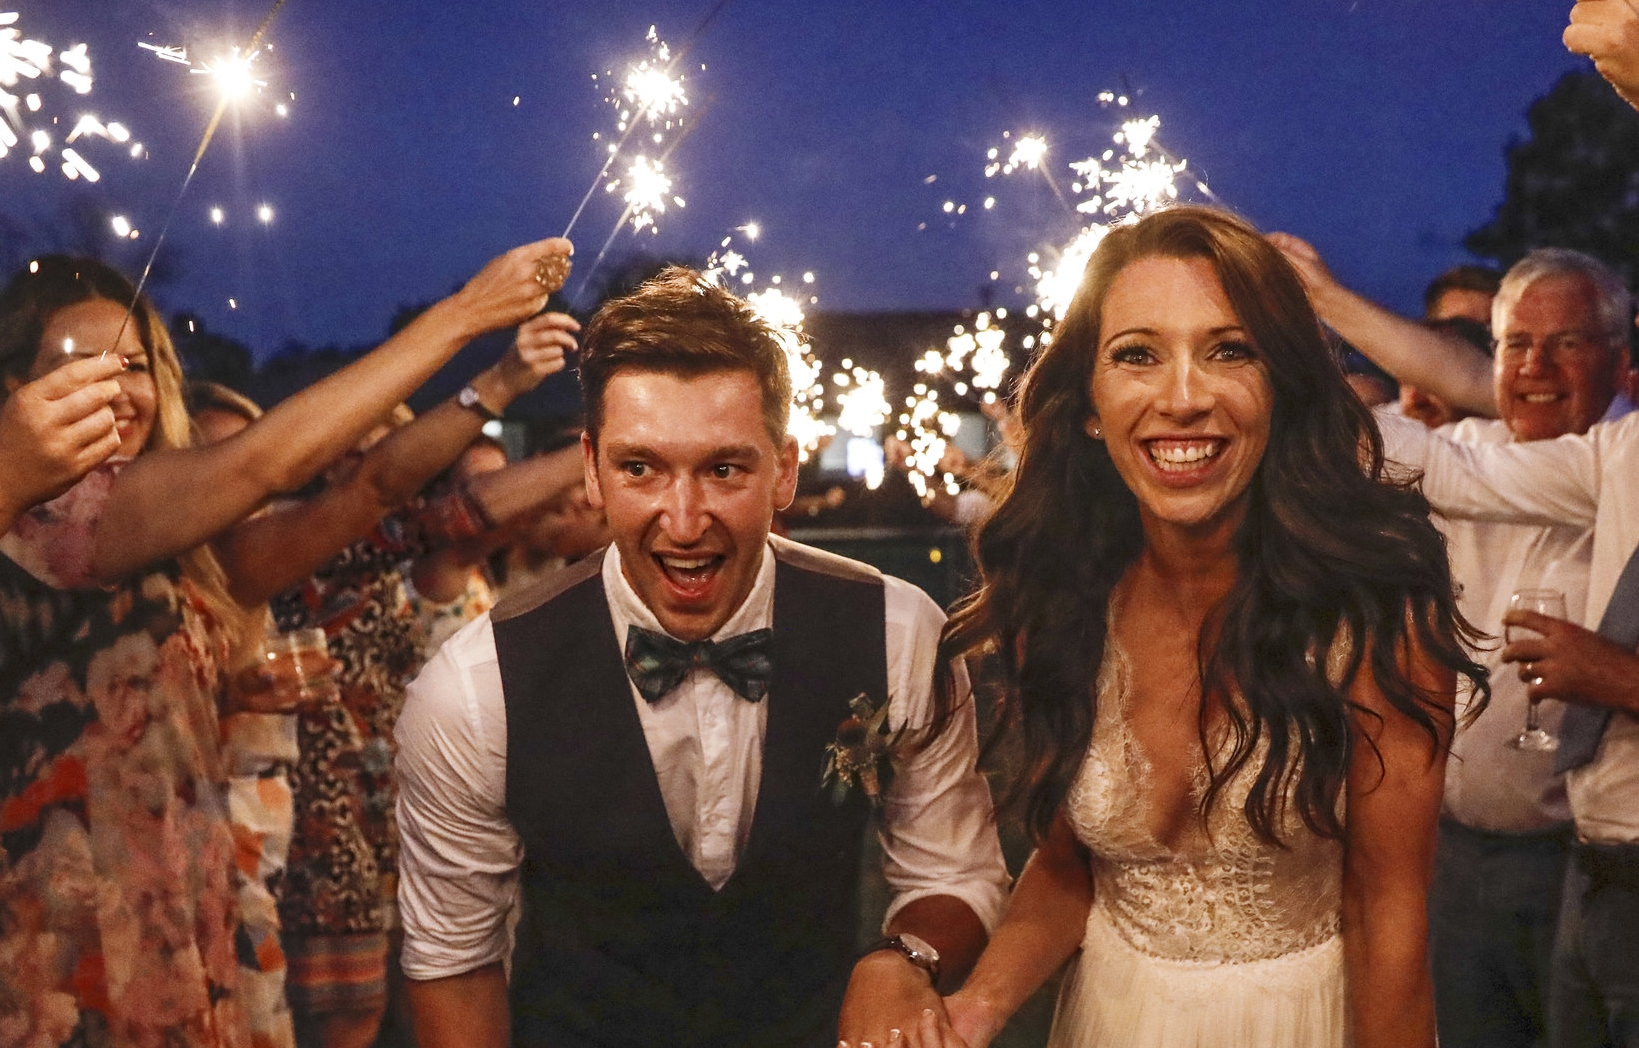 Bride and Groom running through sparklers on their wedding day